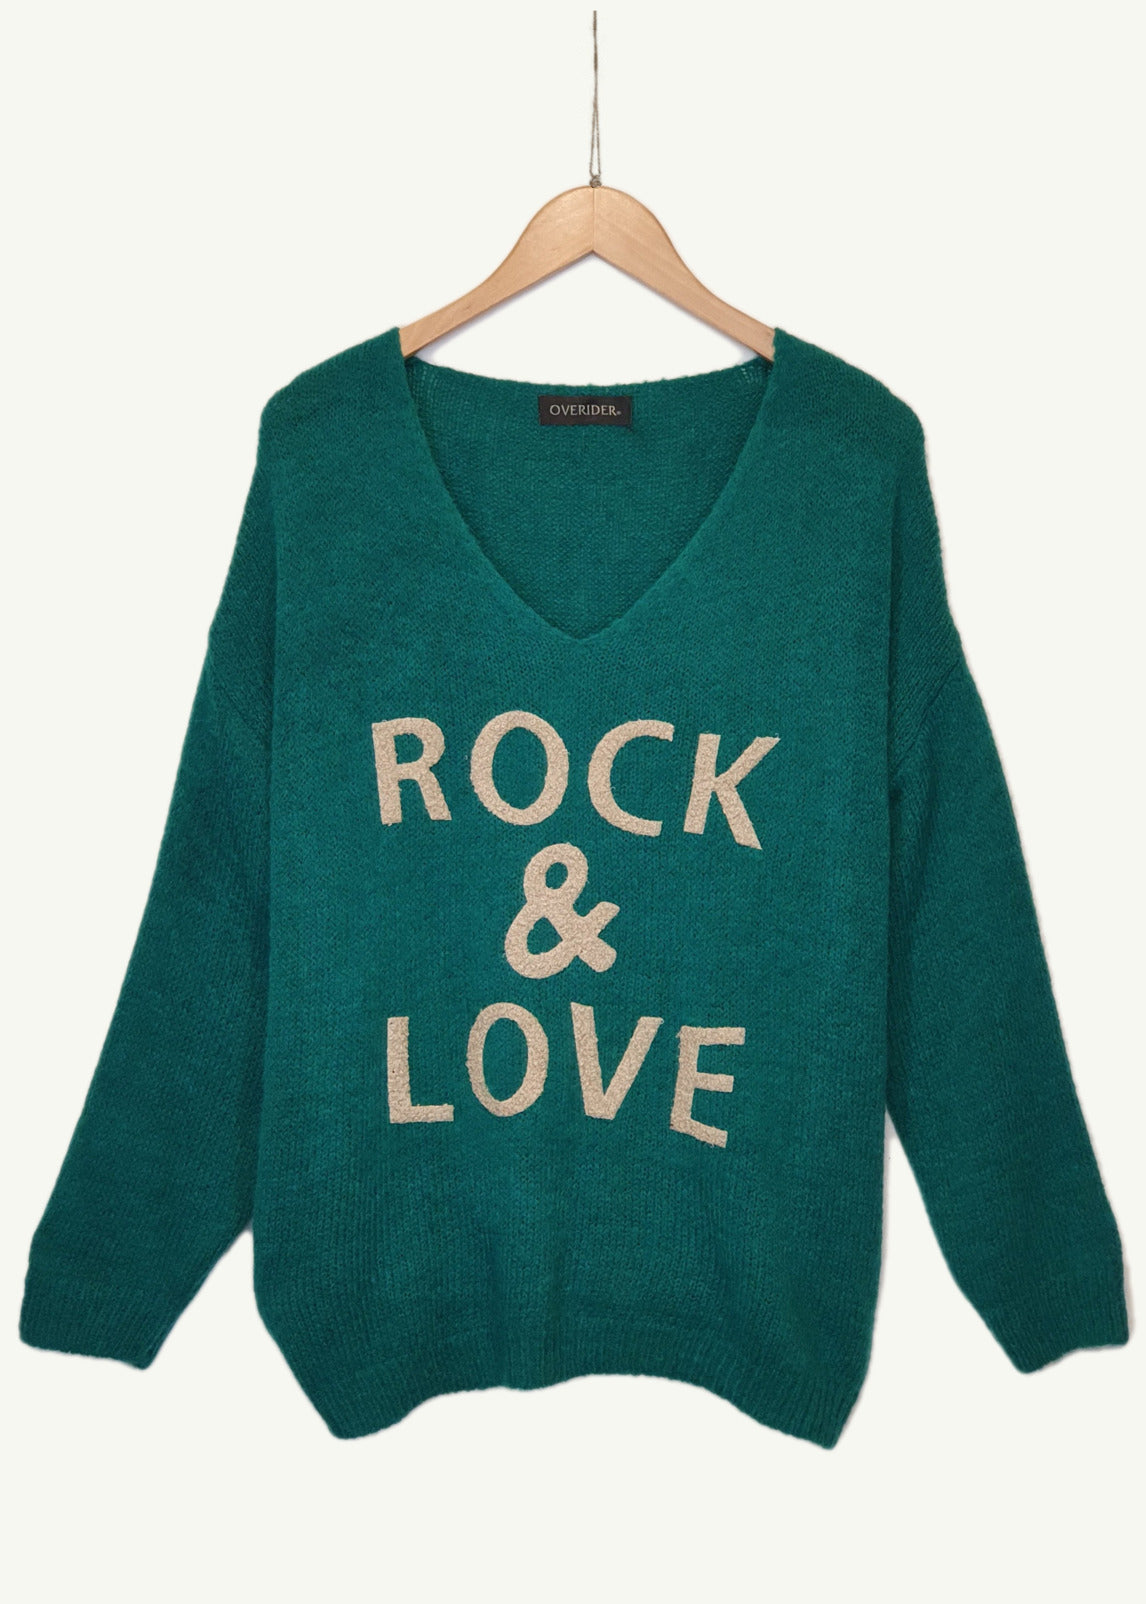 ROCK AND LOVE  - Knitted Jumper - Green